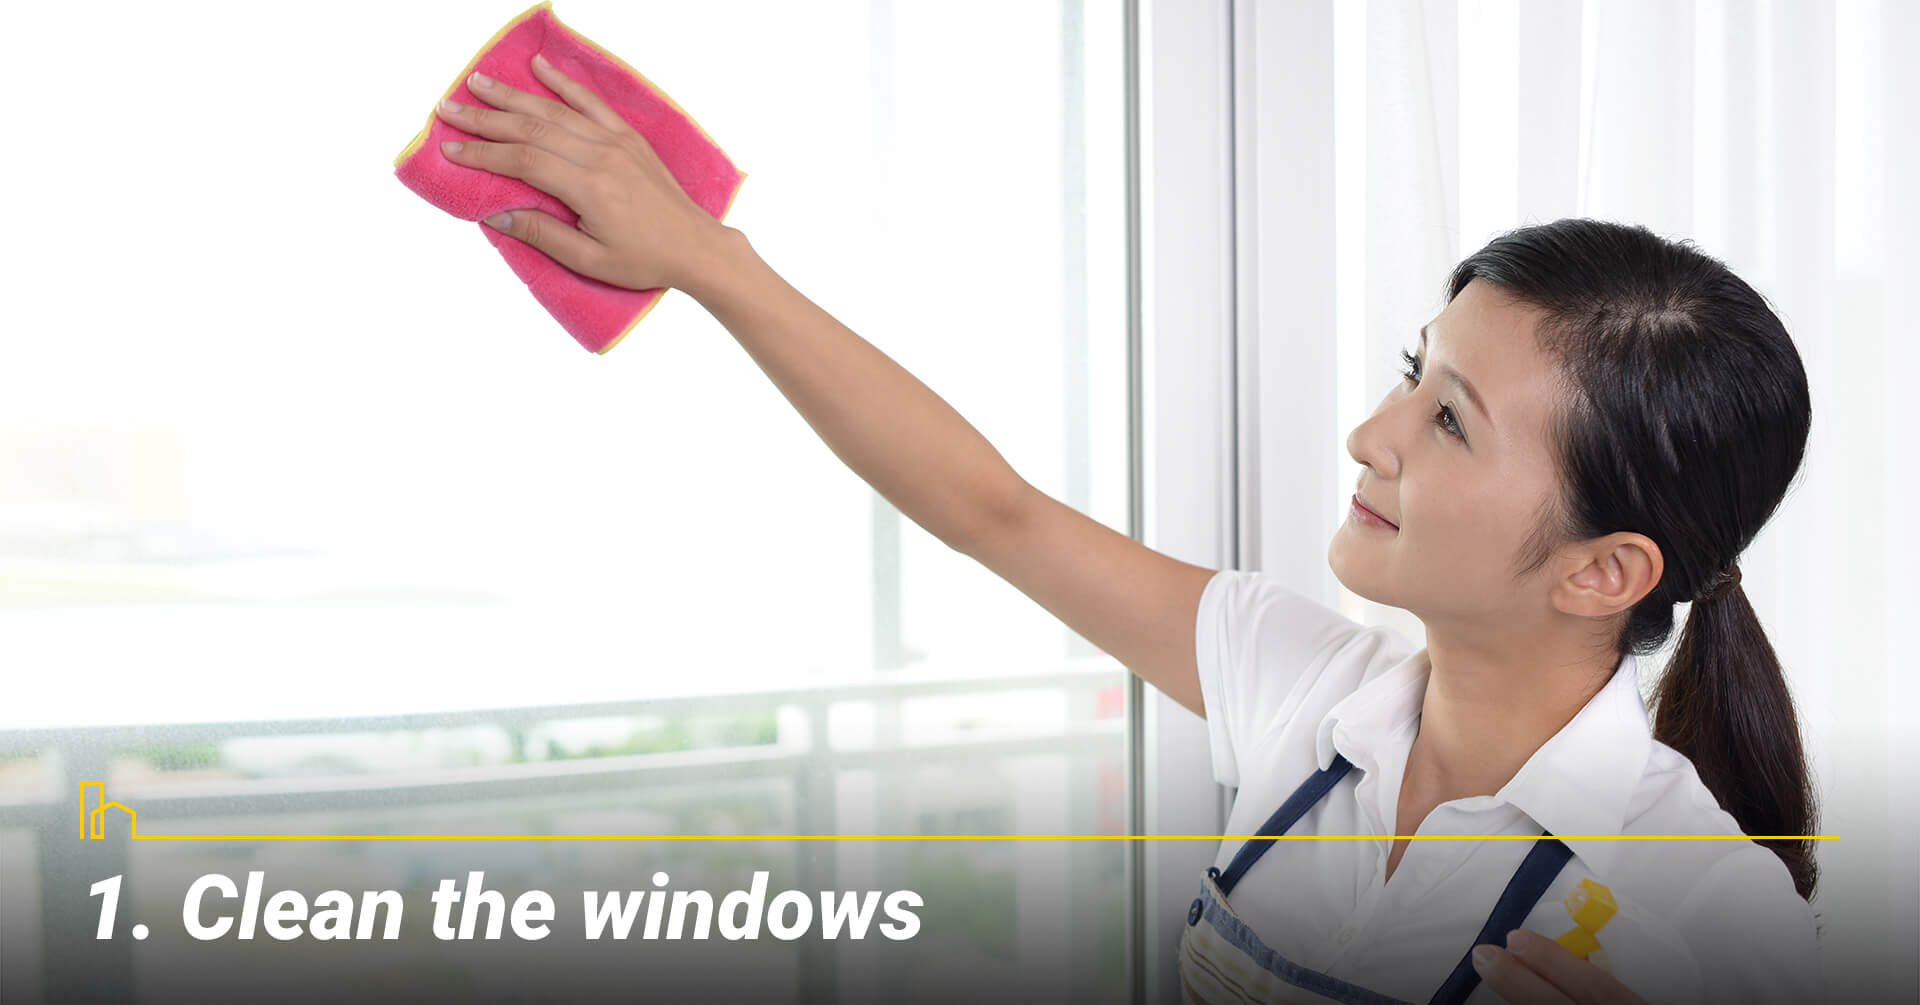 Clean the windows, keep windows clean